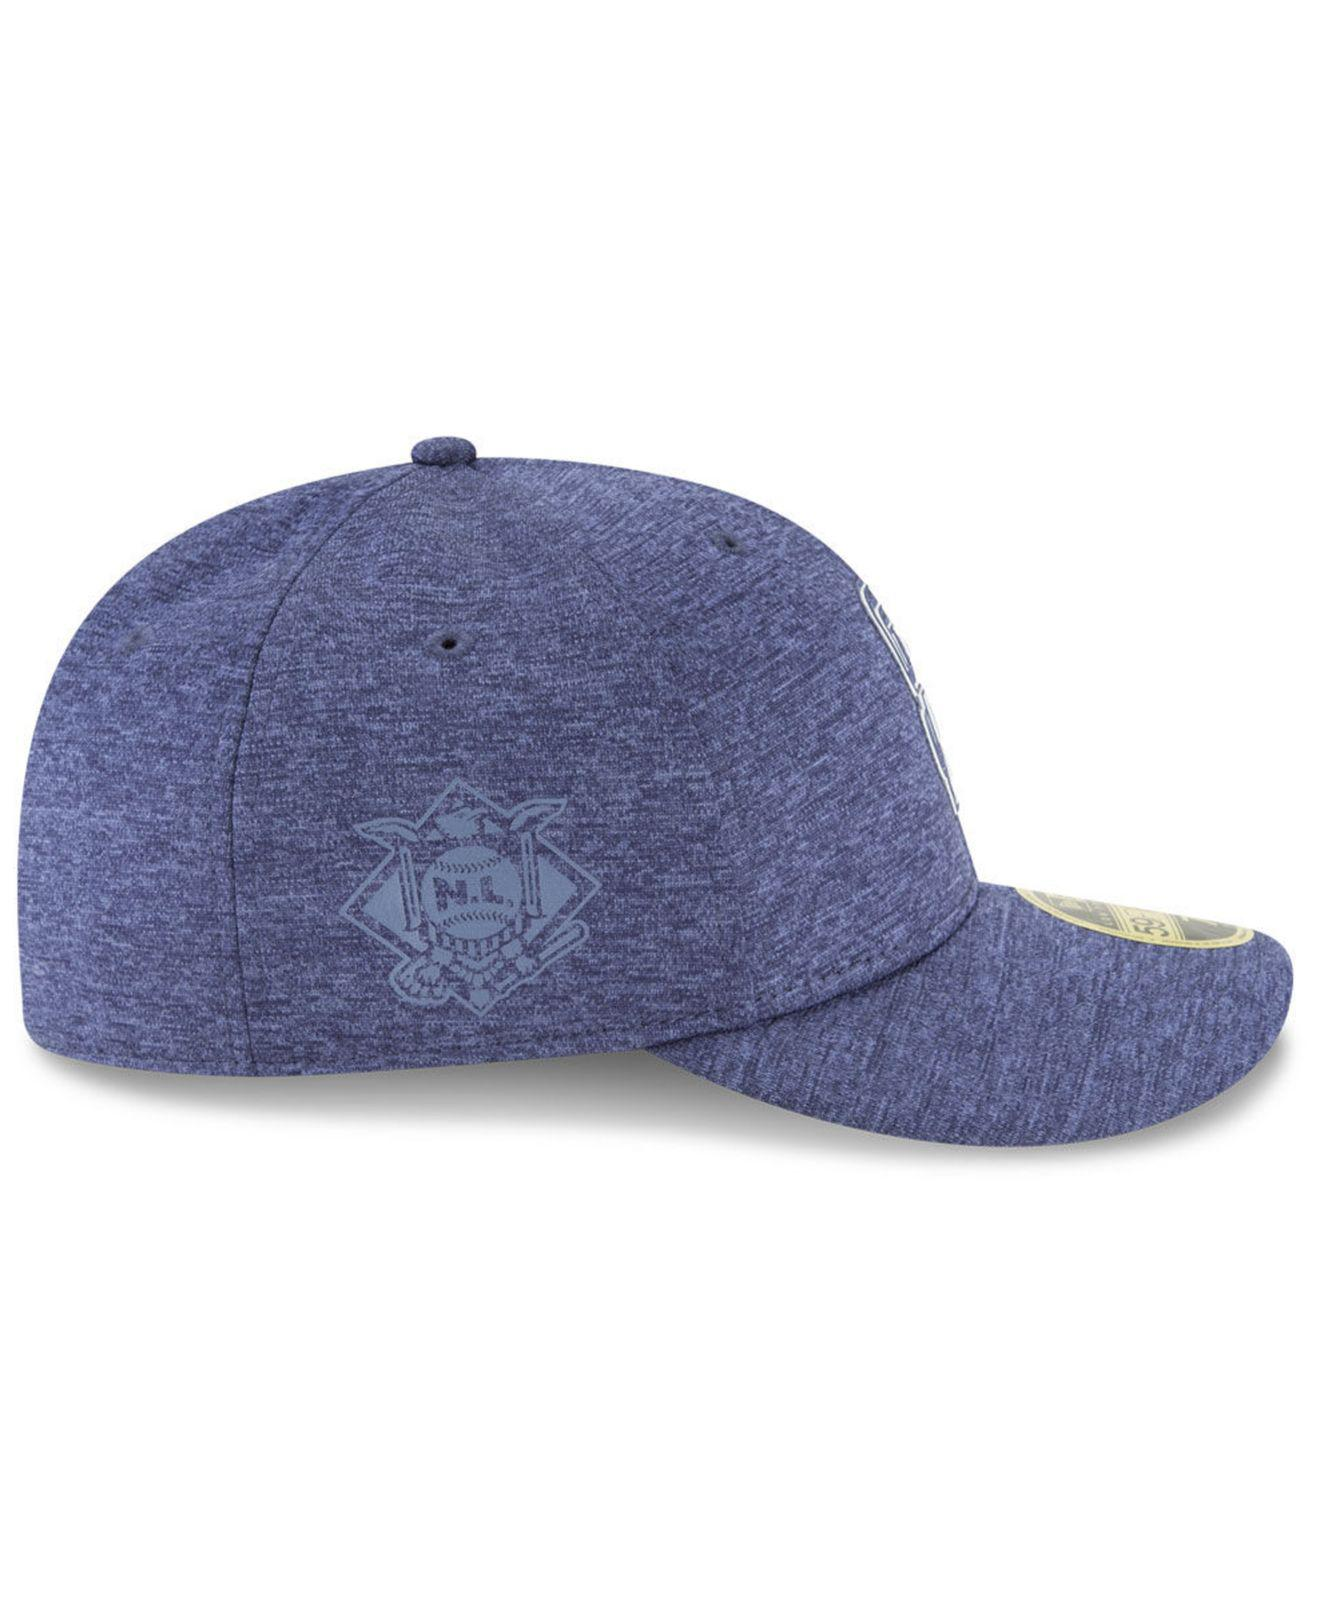 new product 850d7 ef7c6 Lyst - KTZ San Diego Padres Clubhouse Low Crown 59fifty Fitted Cap in Blue  for Men